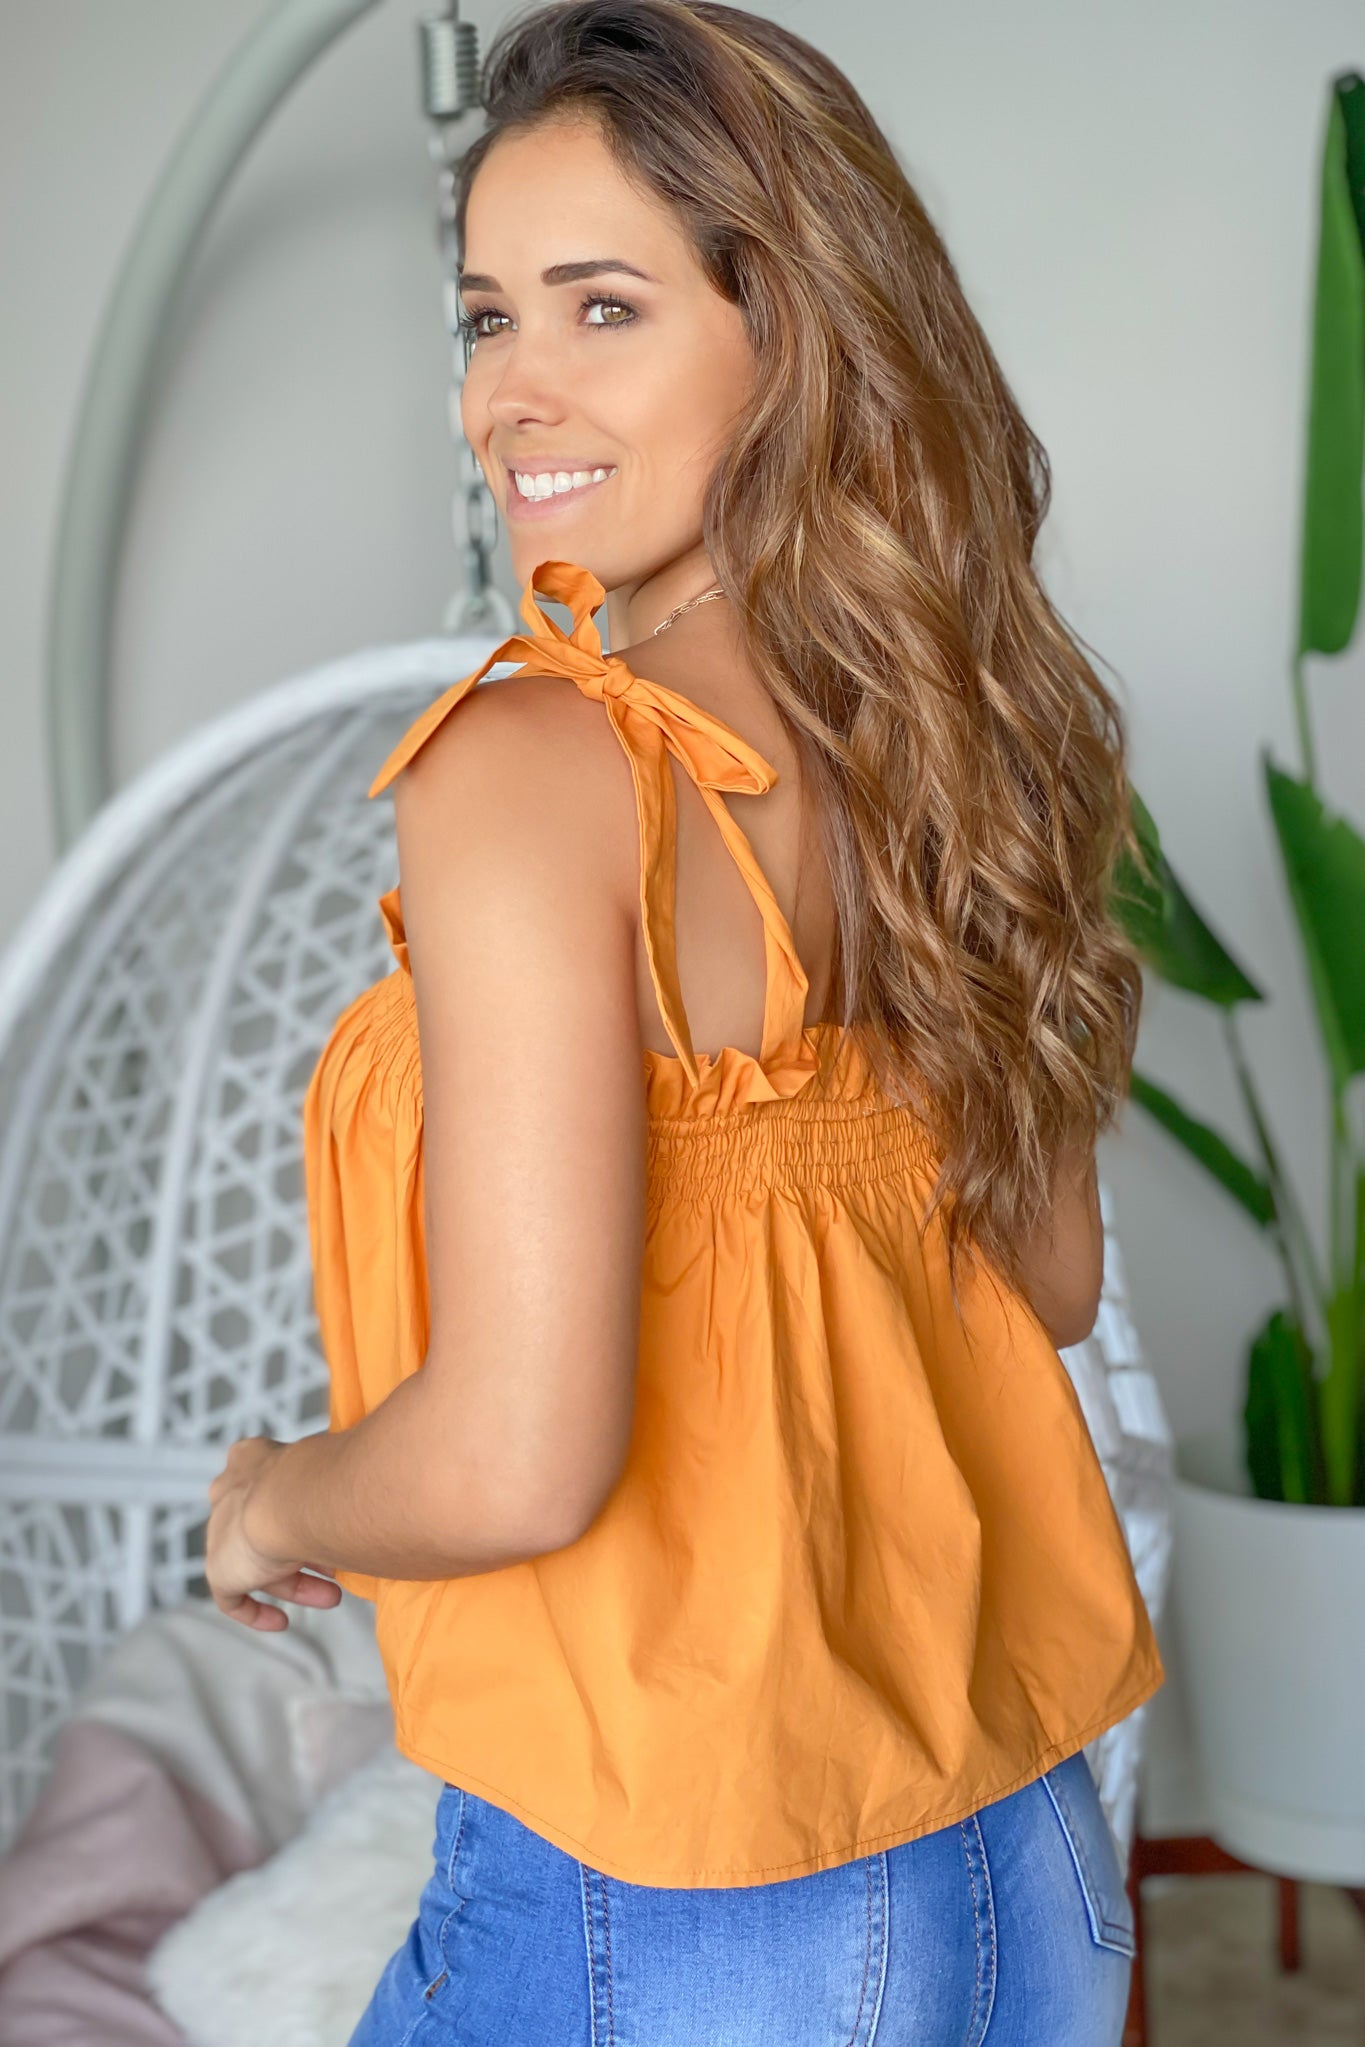 tangerine top with straps